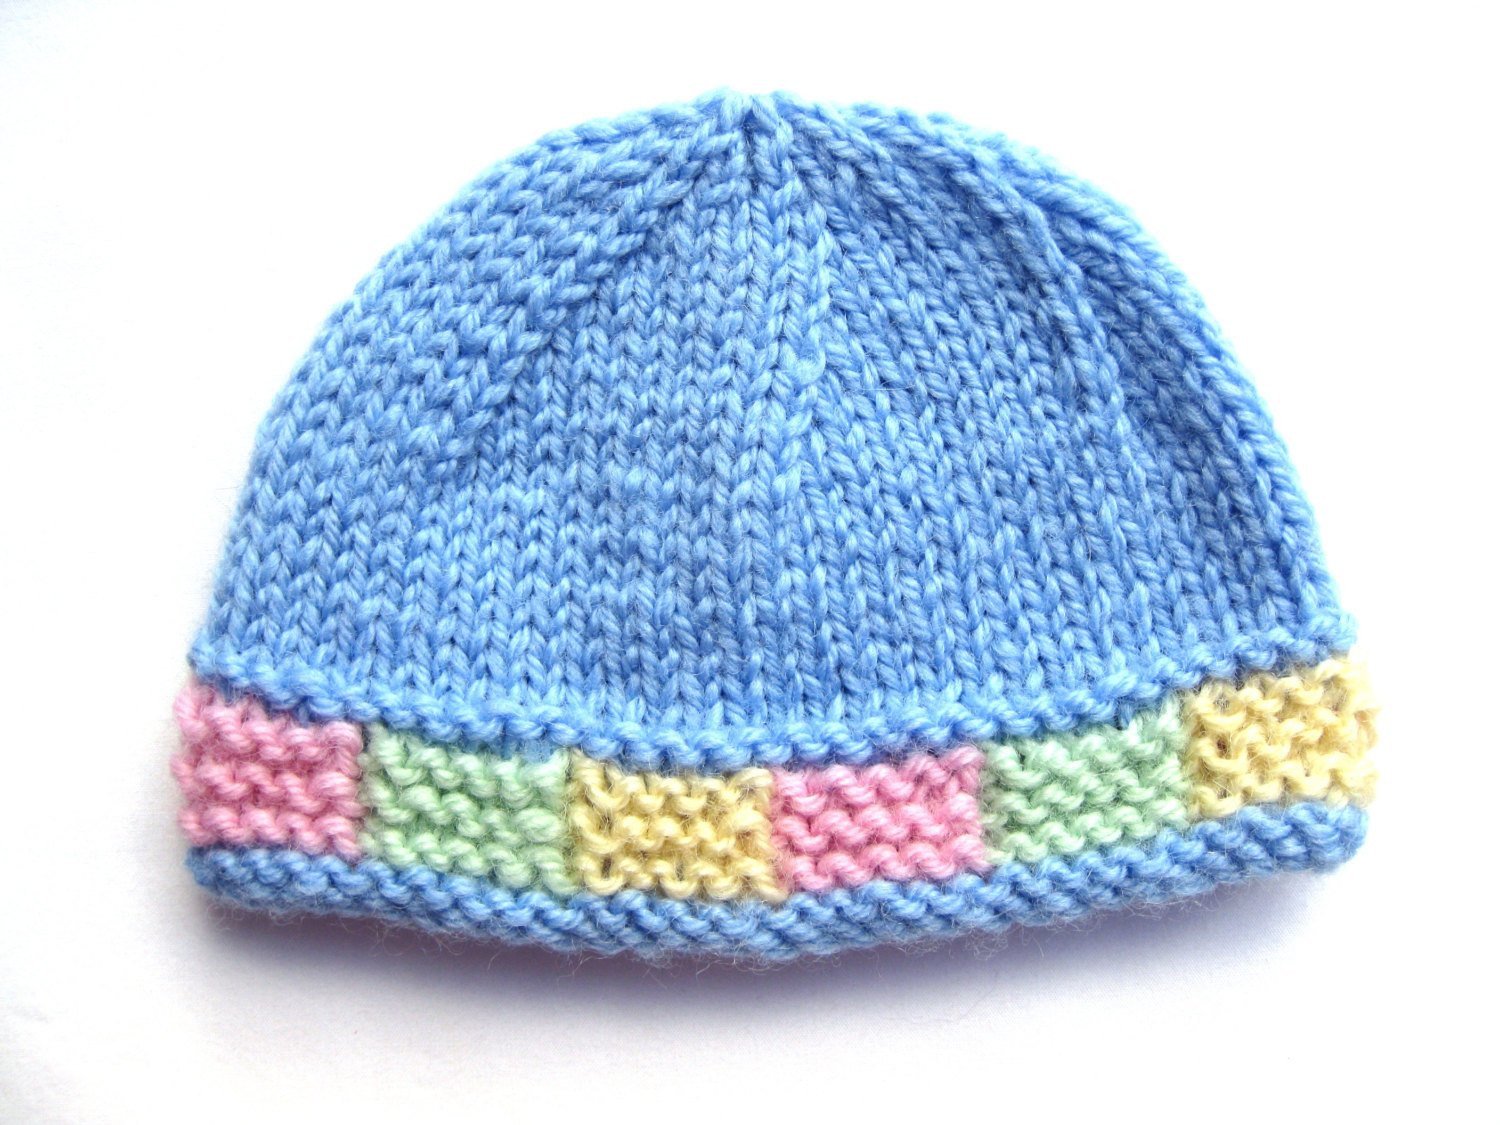 Lovely Instant Pattern Knit Preemie Hat with Colorful Garter Preemie Hat Pattern Of Incredible 41 Images Preemie Hat Pattern